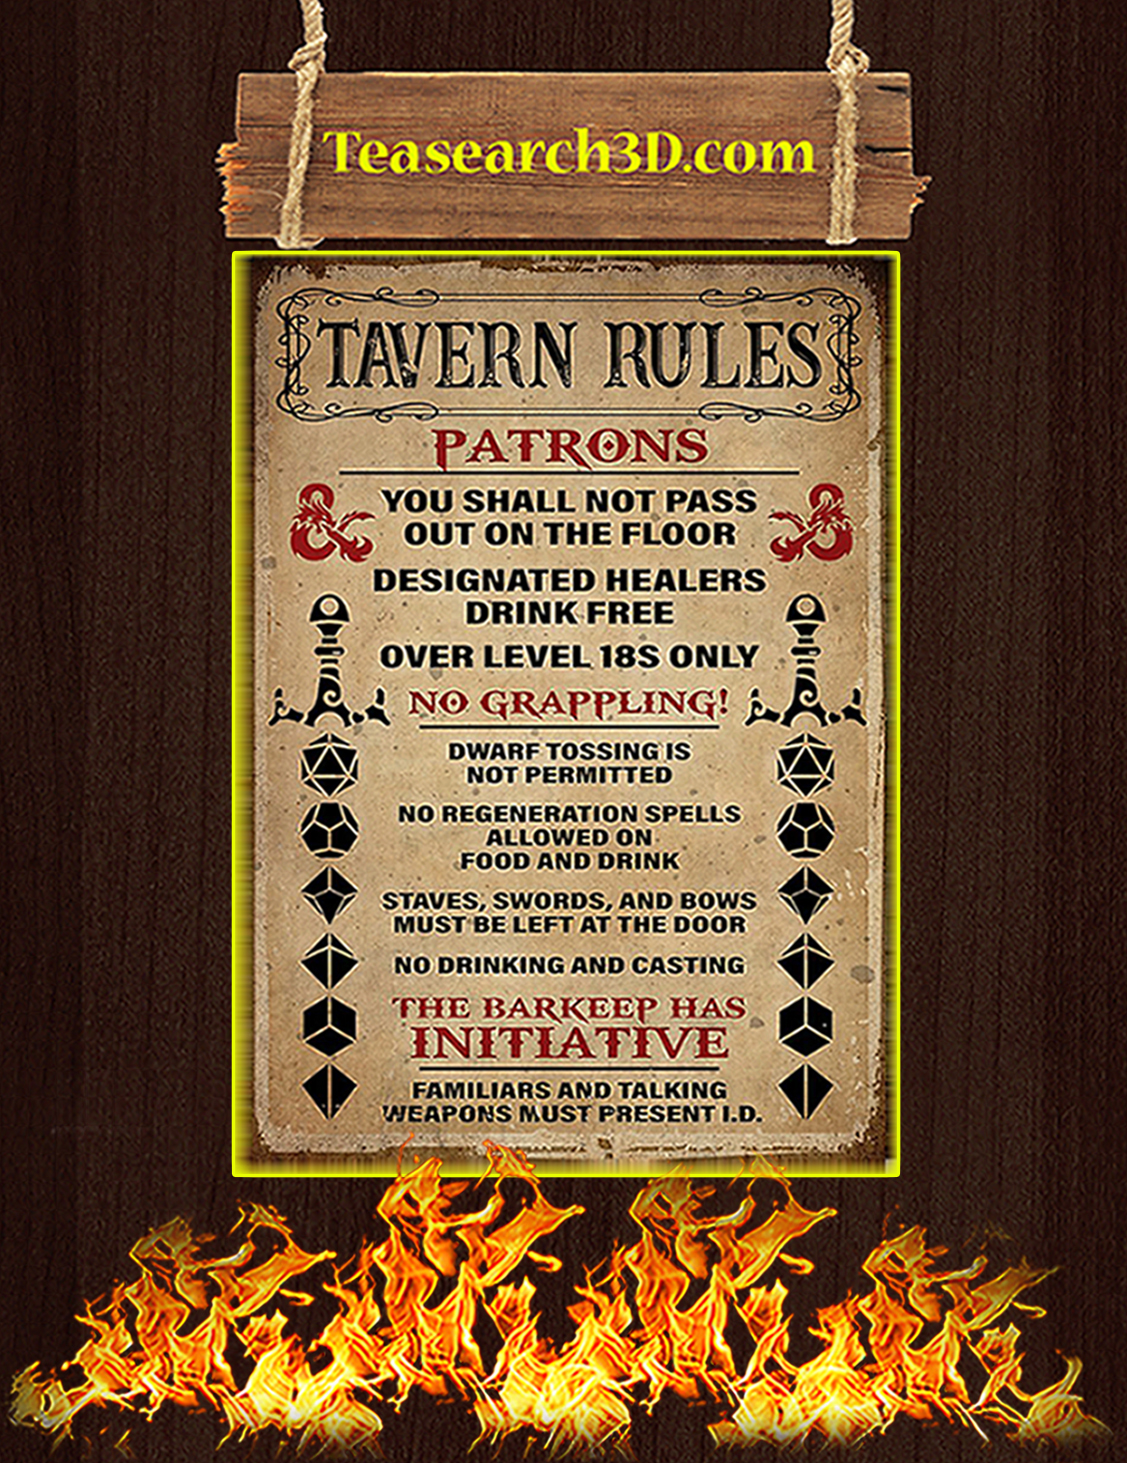 Game tavern rules patrons poster A3